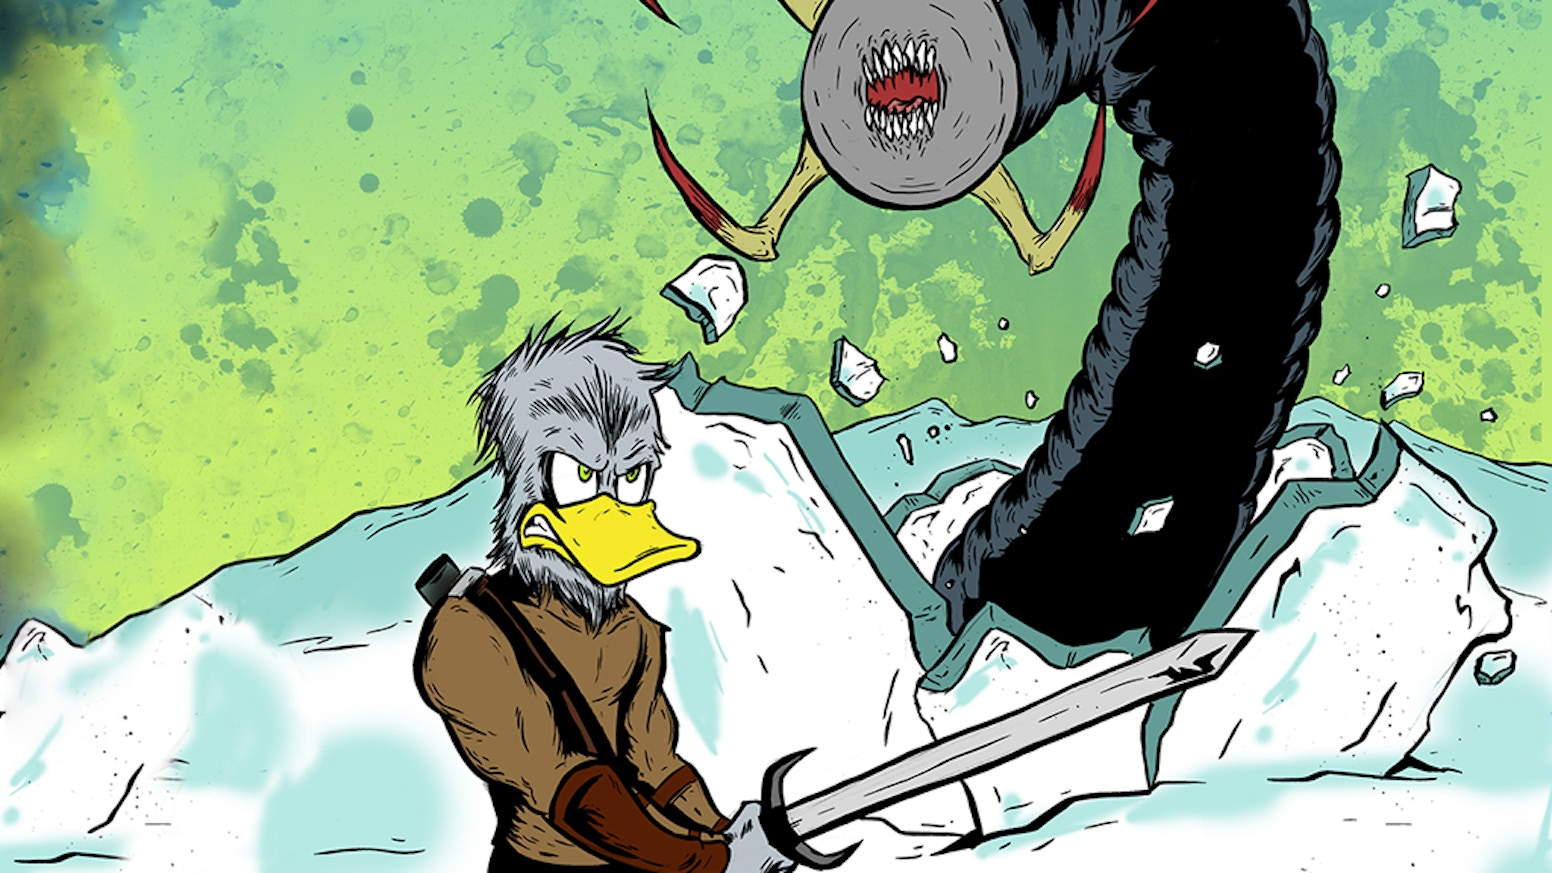 Get an Alternate Cover Edition of Quackup #3 by Ray Mullikin!